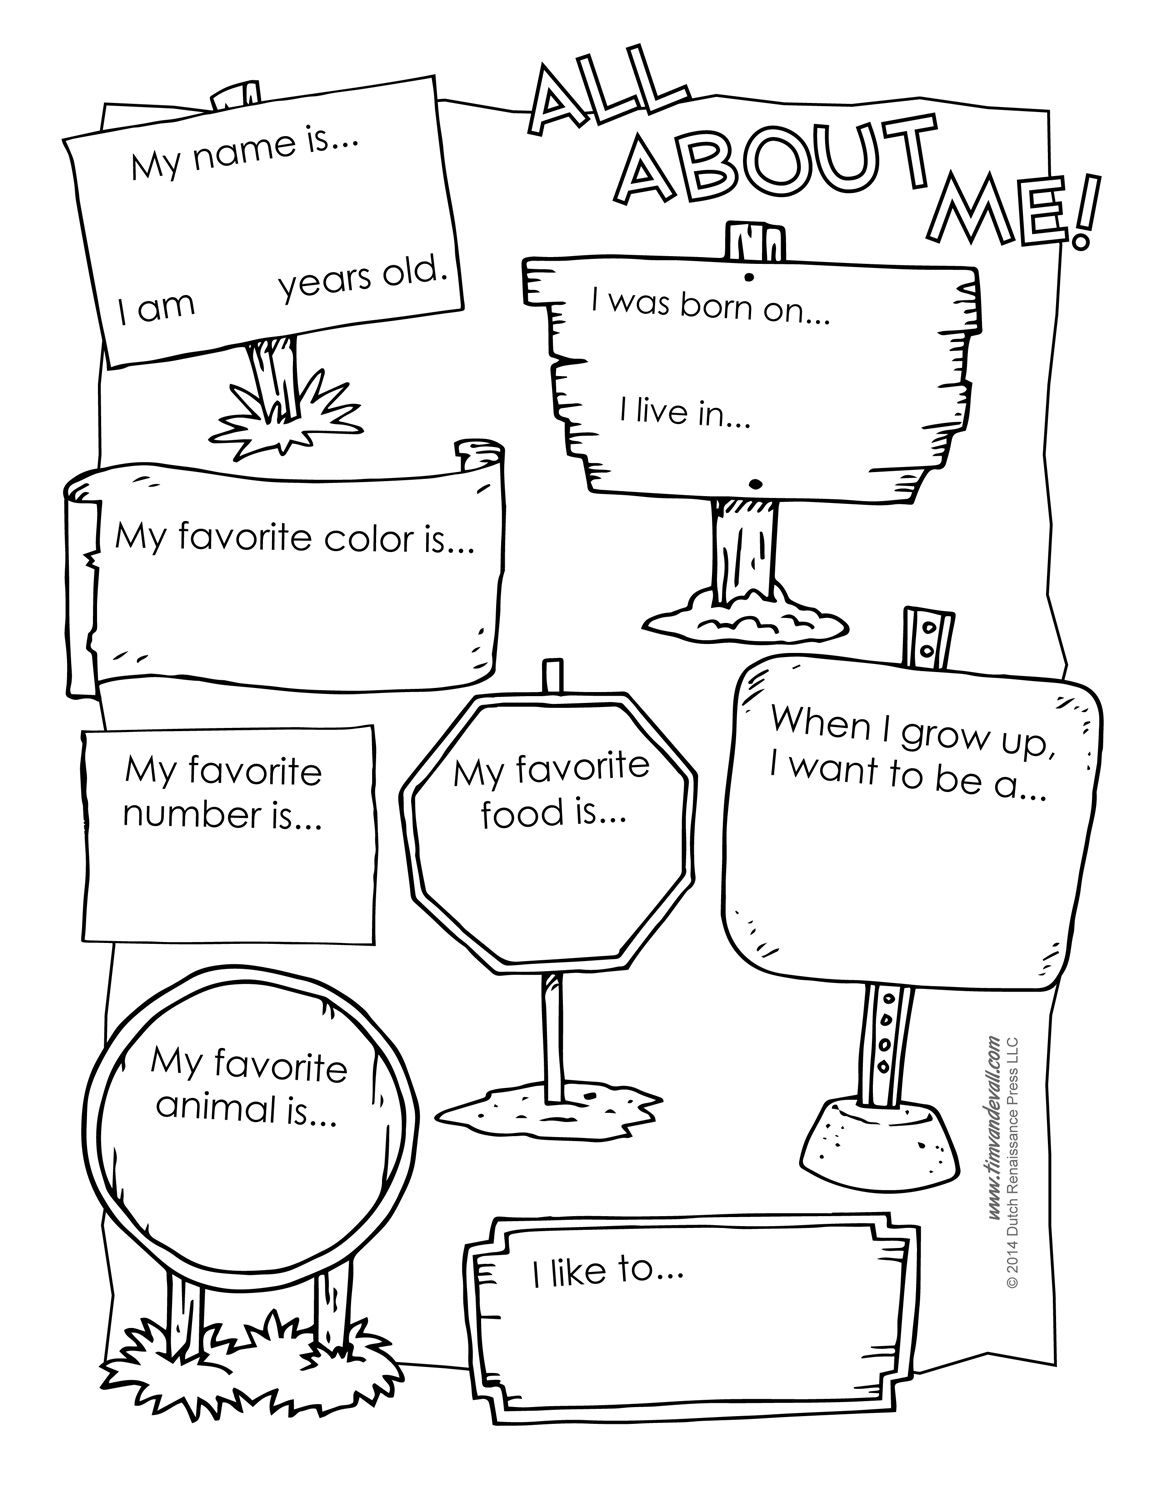 Worksheets All About Me Printable Worksheet all about me preschool template 6 best images of printable template